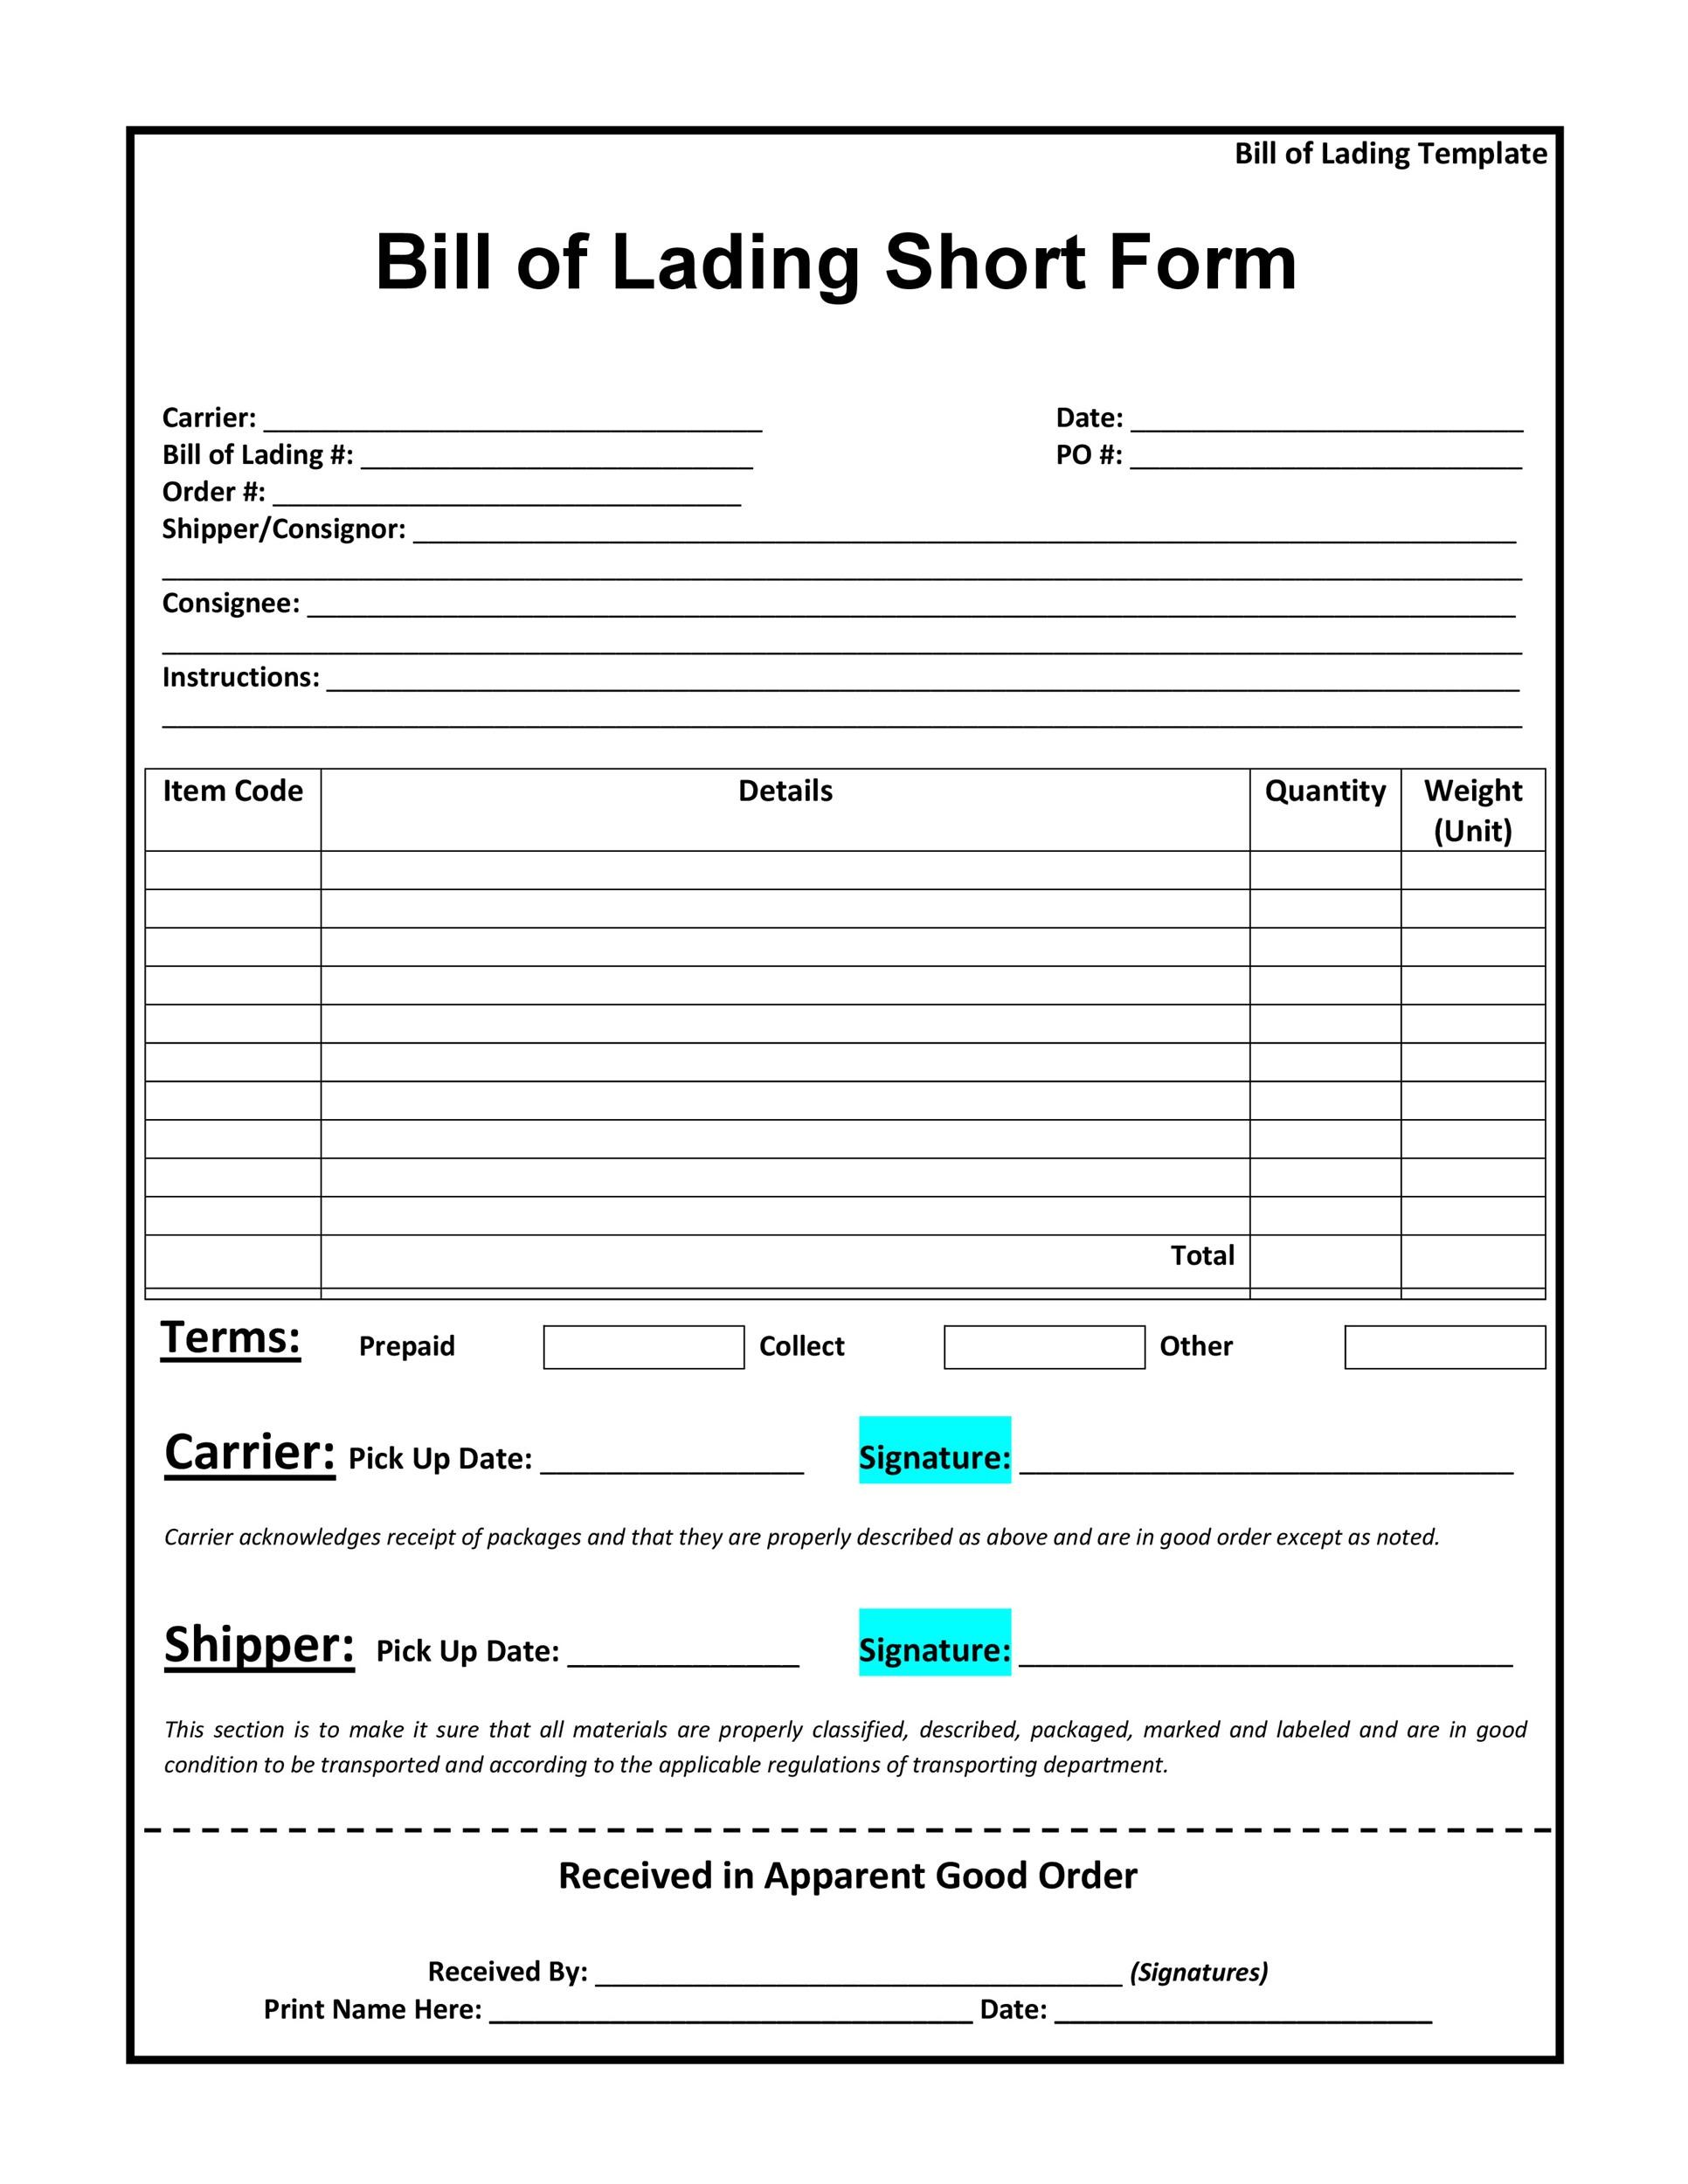 image regarding Printable Bill of Lading known as 40 Absolutely free Monthly bill of Lading Types Templates ᐅ Template Lab